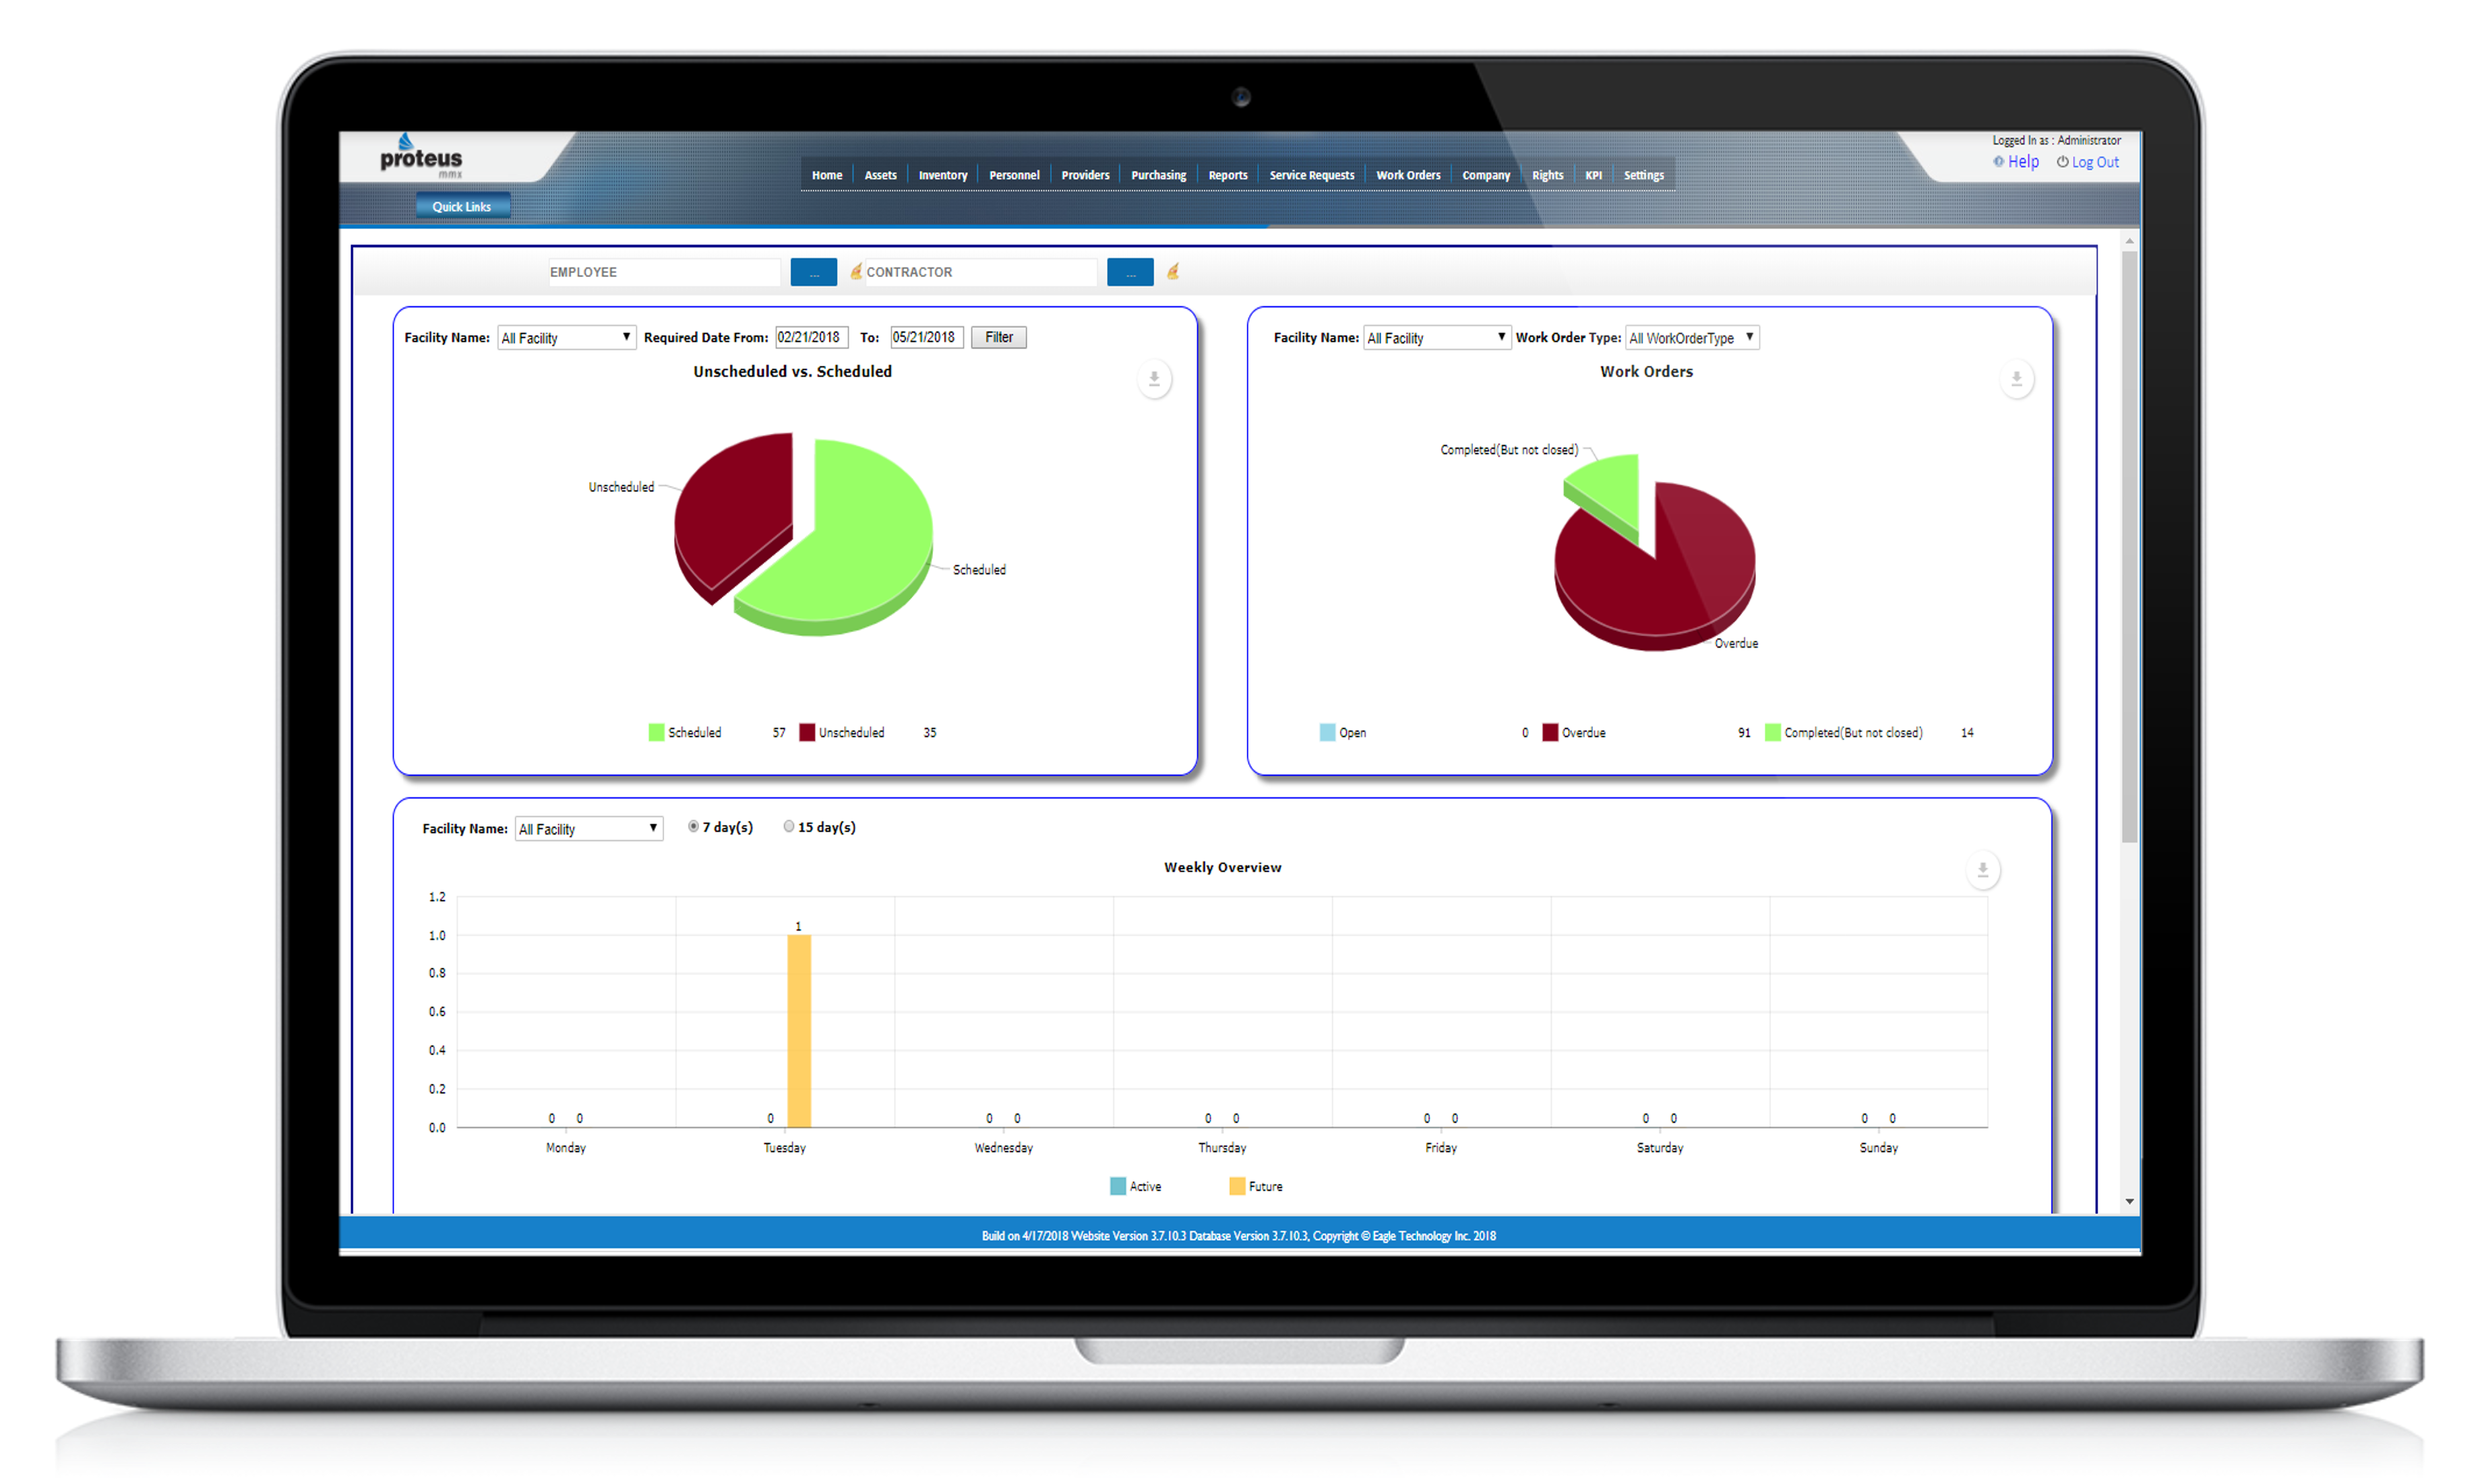 You can monitor asset performance, initiate preventive/predictive maintenance measures, and easily collect data on your assets. This allows for better risk management, warranties, and change notices. When integrated with the factory floor and MES/ERP syst